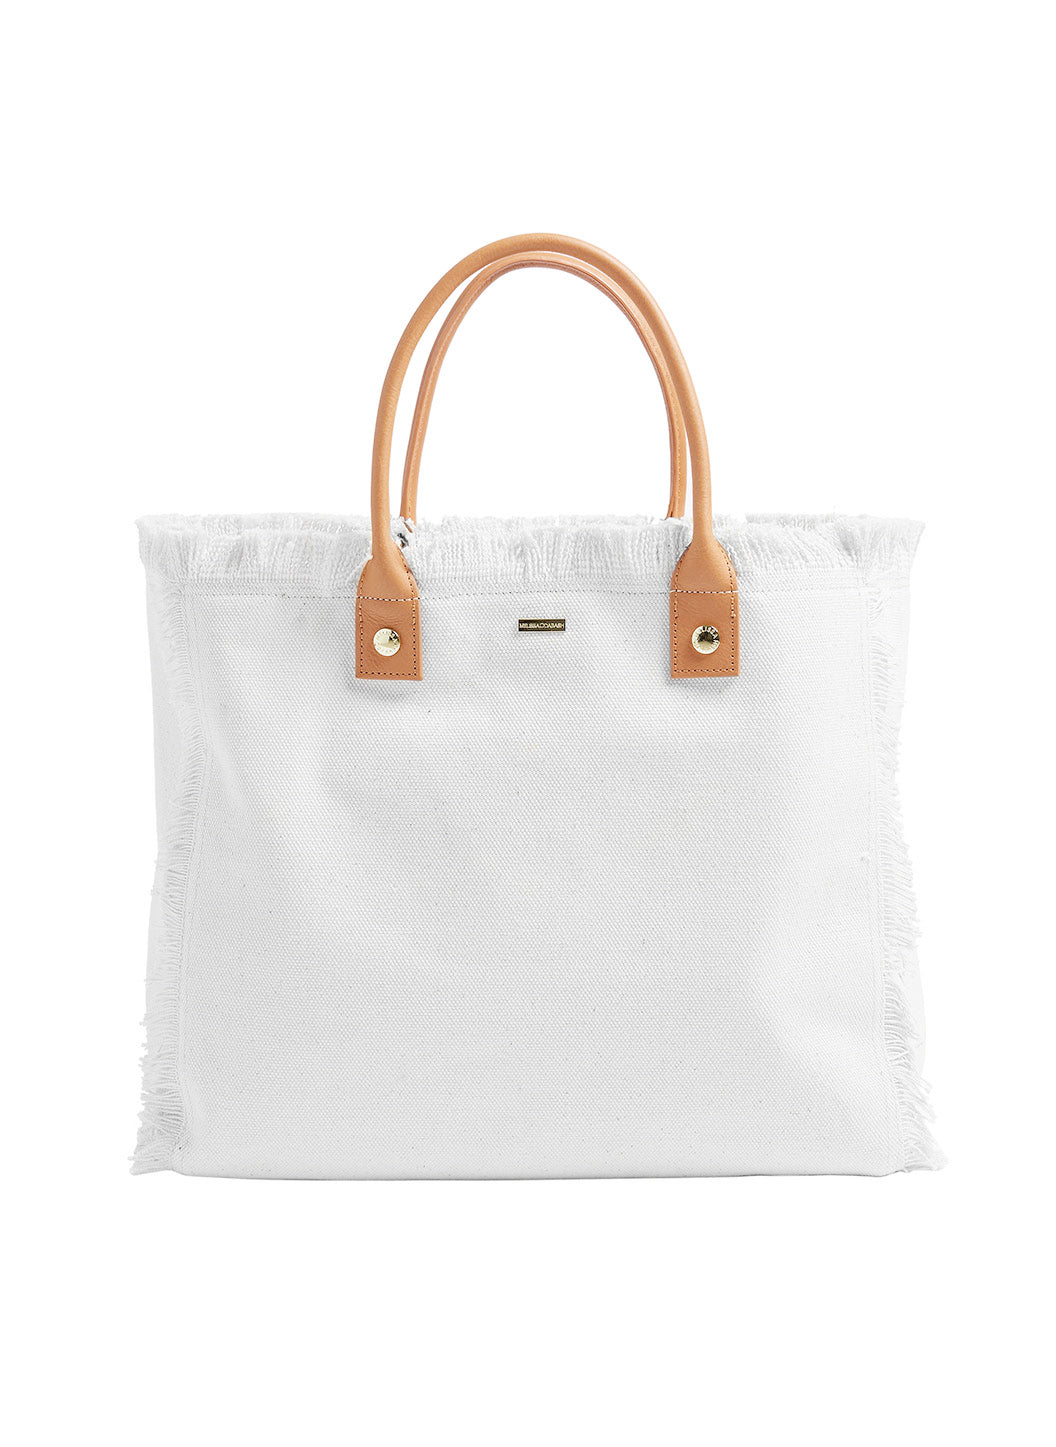 Cap Ferrat Large Beach Tote White